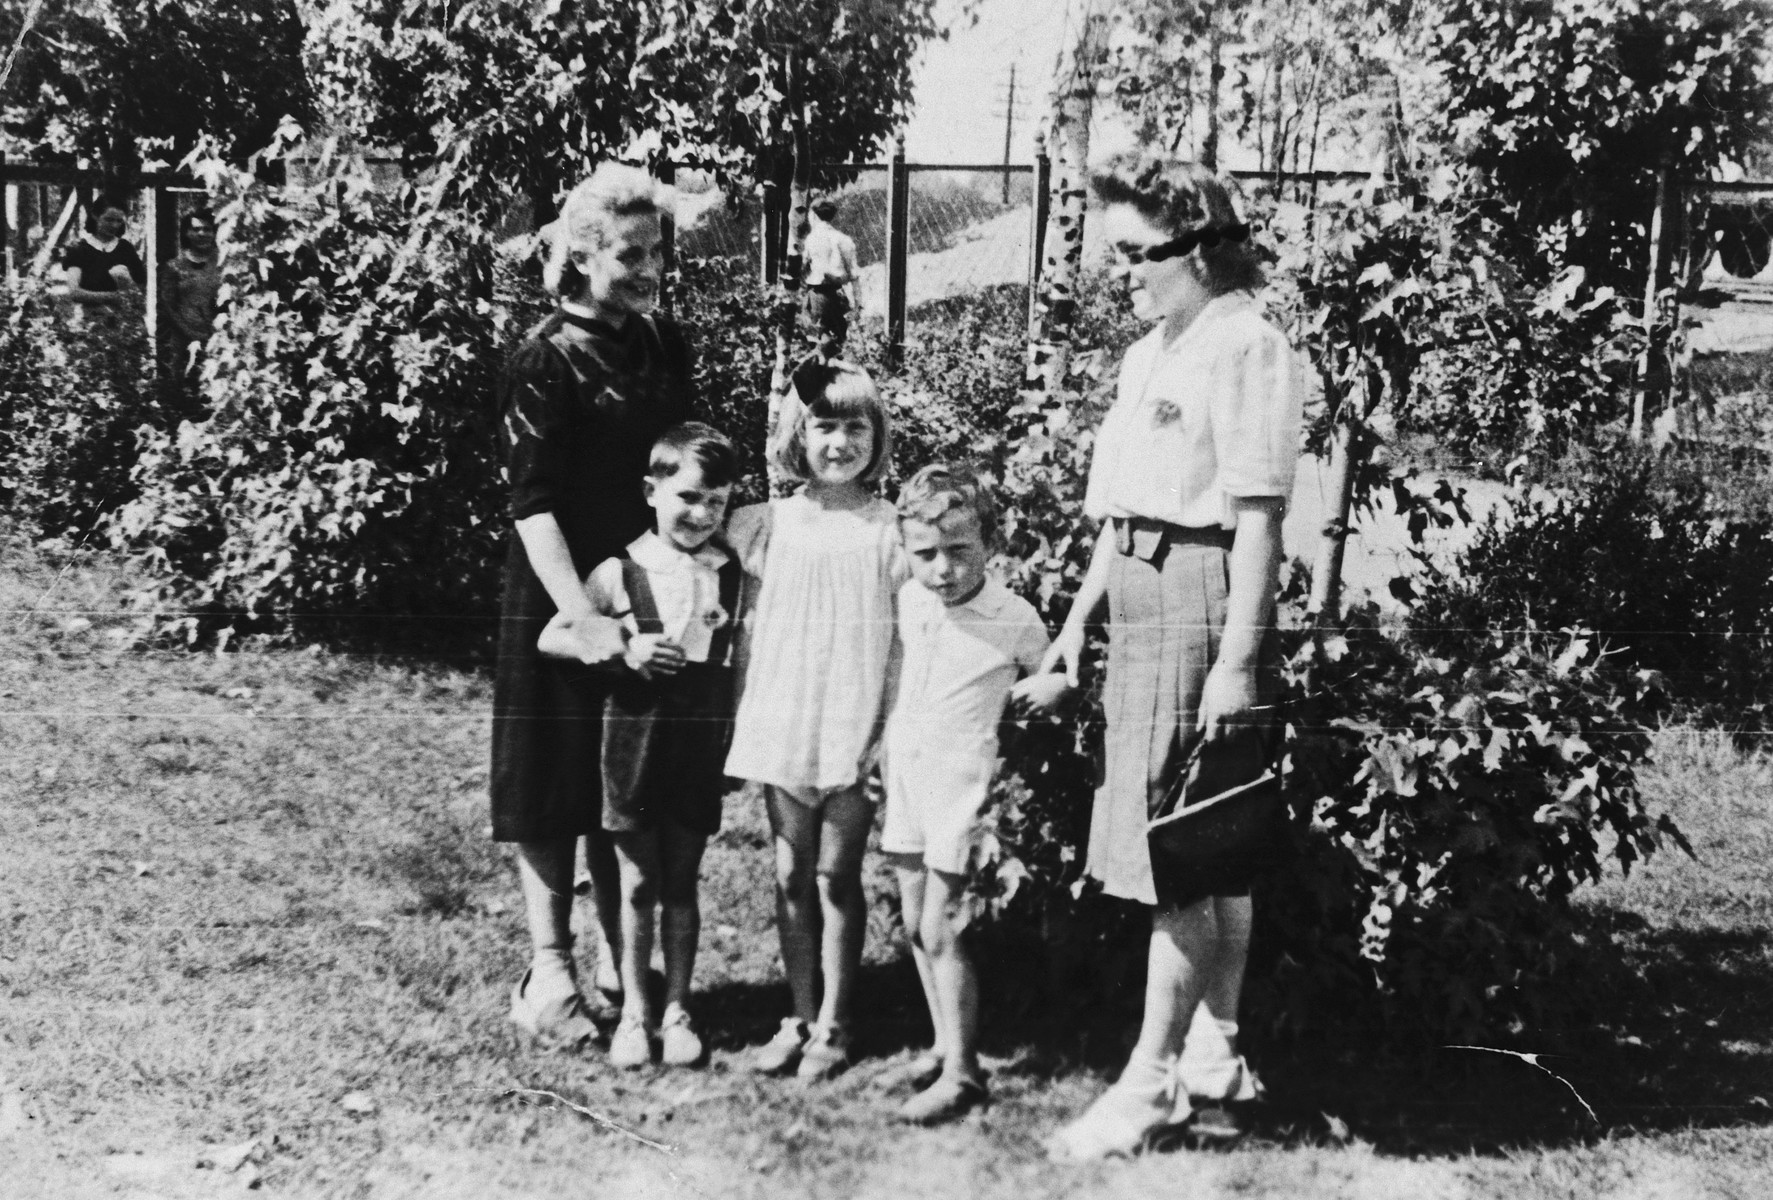 Szaje and Sura Grynberg pose with another family in Stawki where they were hiding under assumed identities.